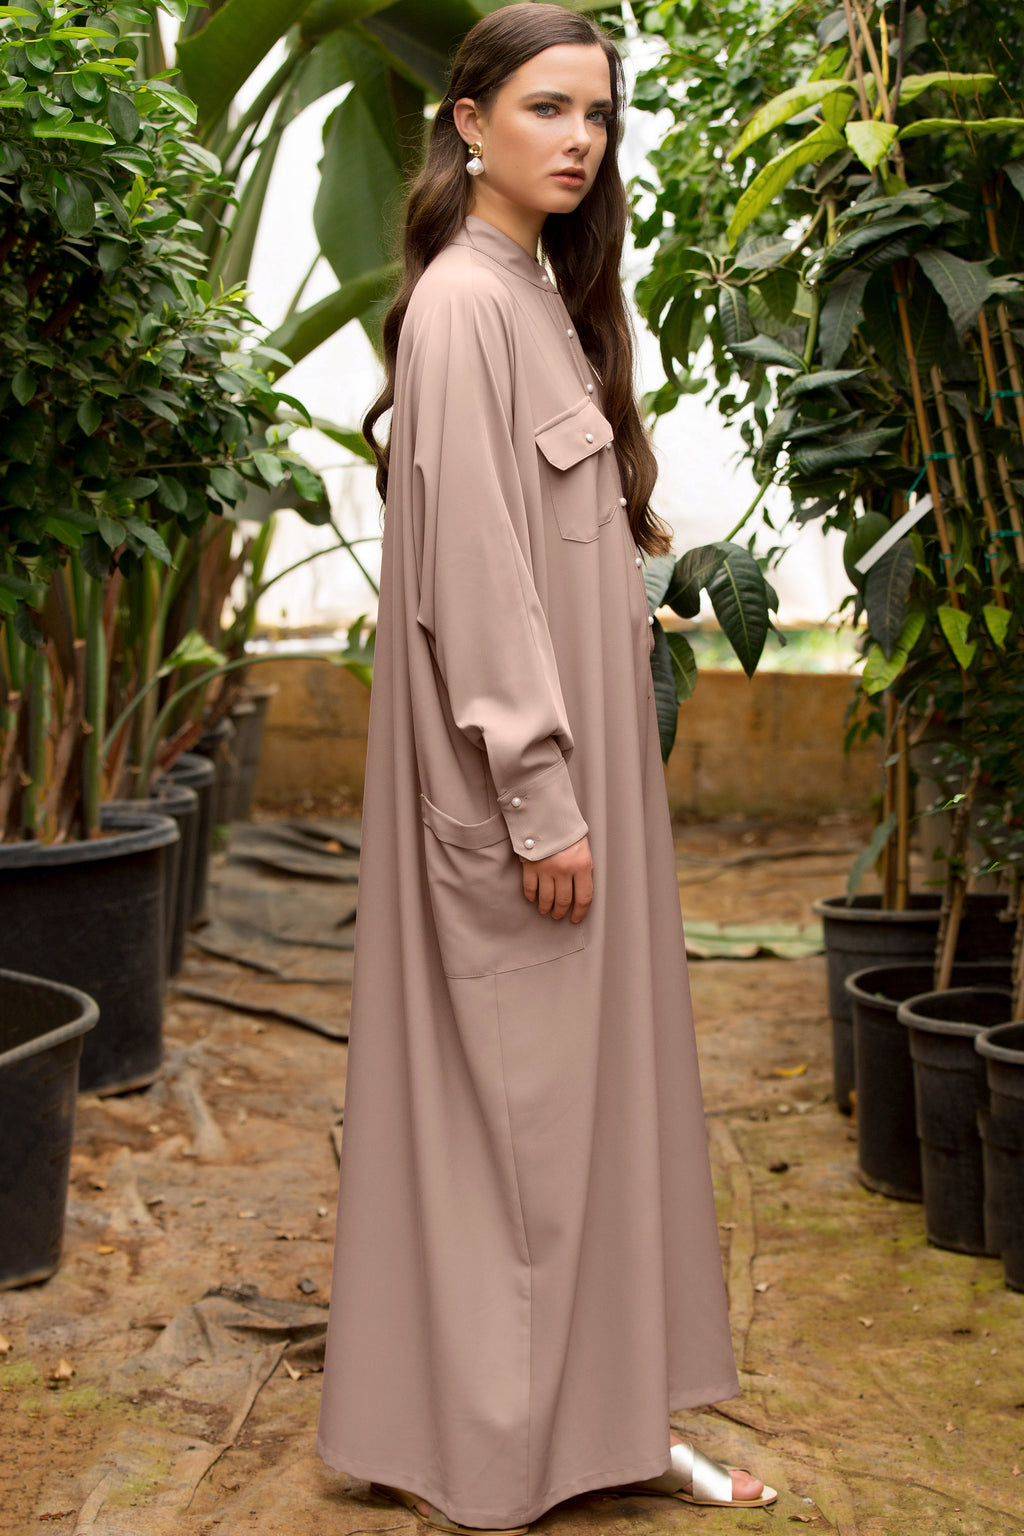 Jenna Oversized Maxi Shirtdress - Nude